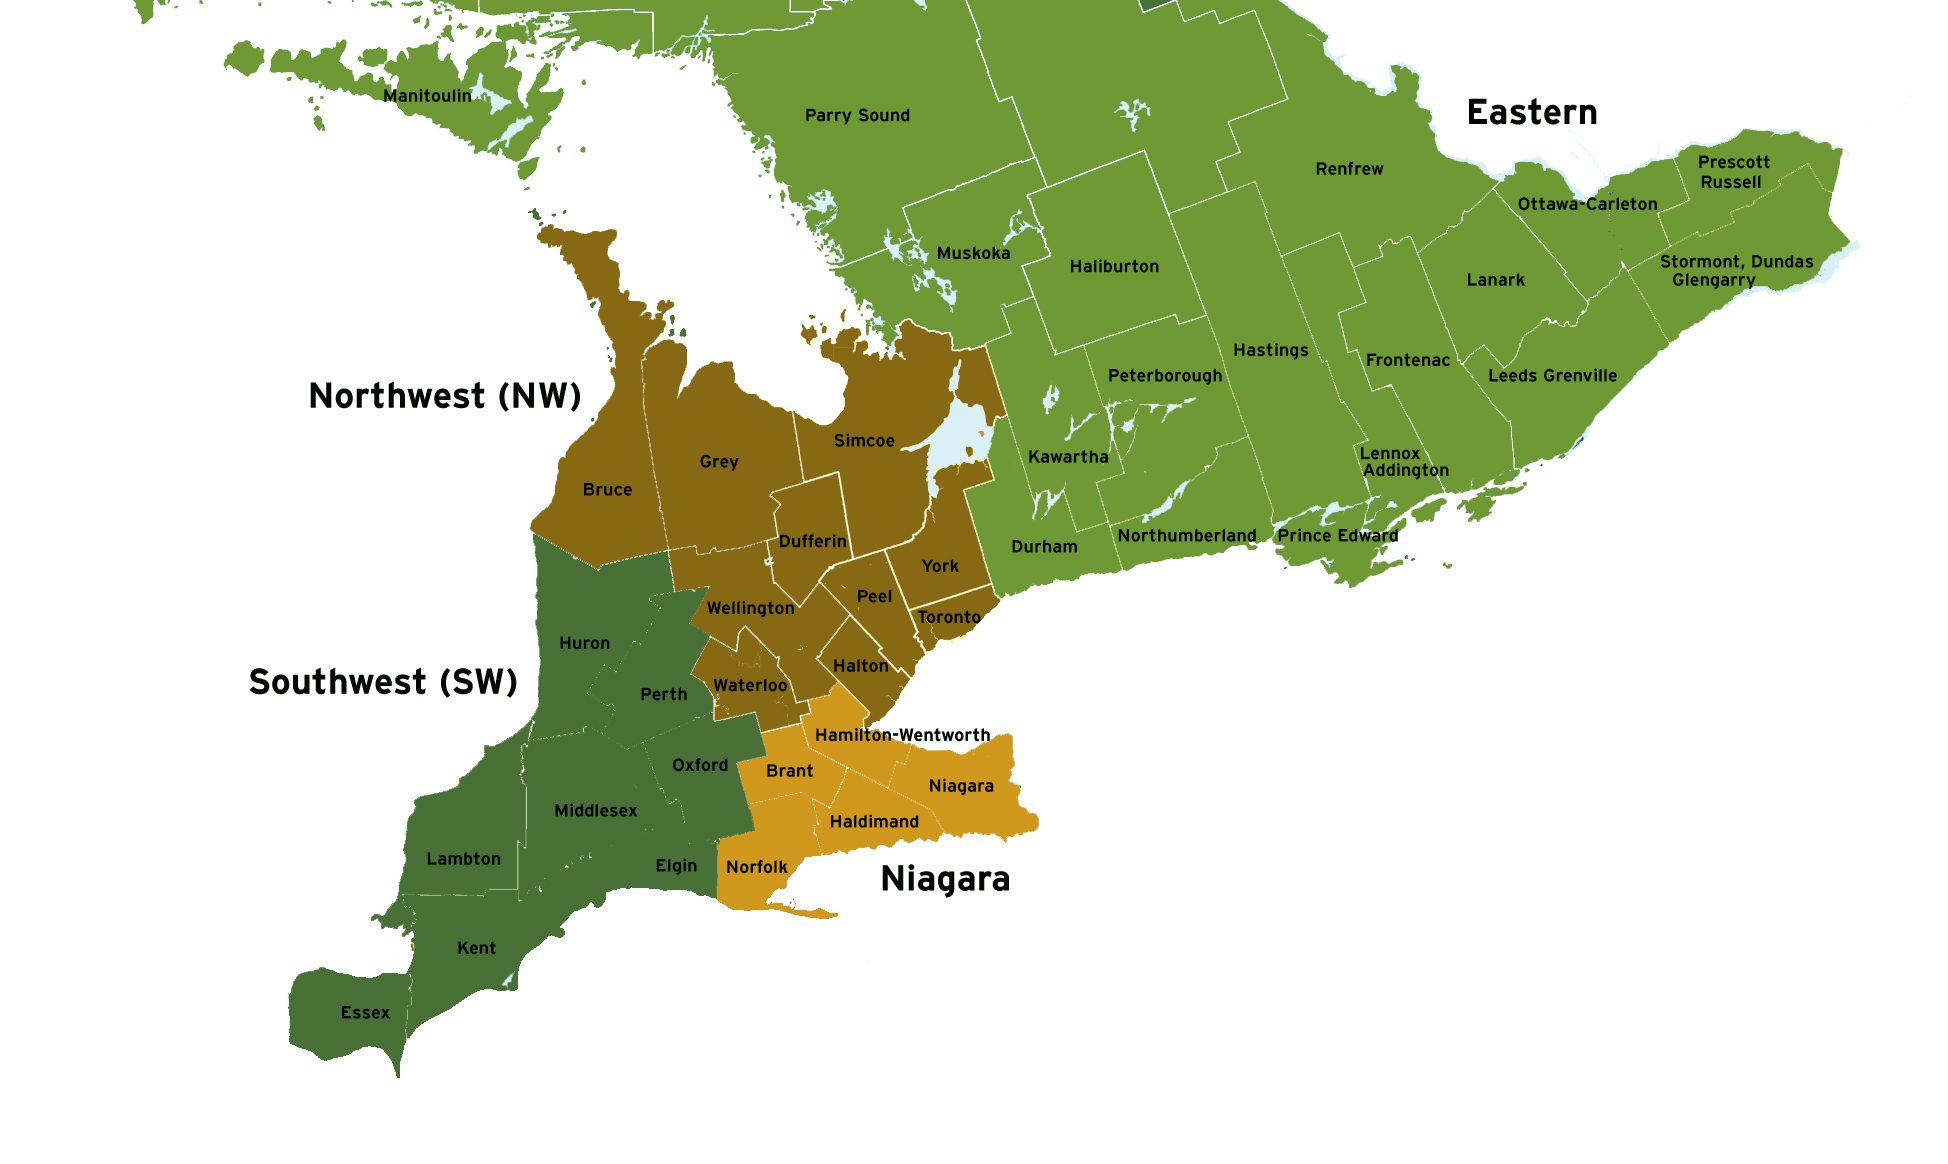 Wheat sampling regions in Ontario with county names